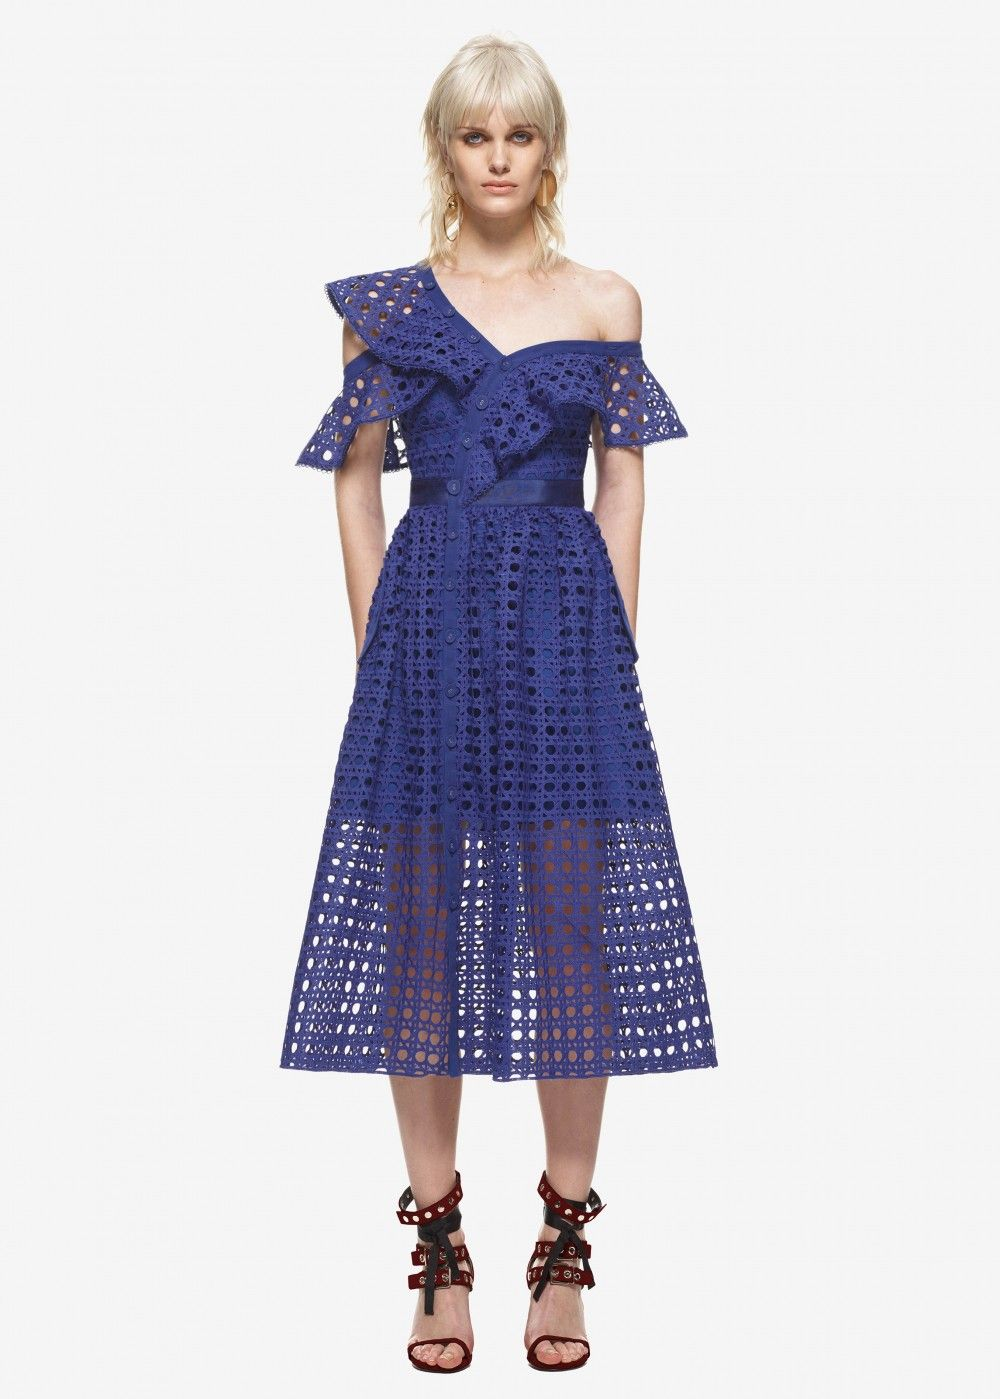 6fd977d06de4 self portrait guipure frill dress cobalt blue #beauty #women #womenfashion  #blackfriday #blackfriday2017 #gifts #dress #thanksgiving